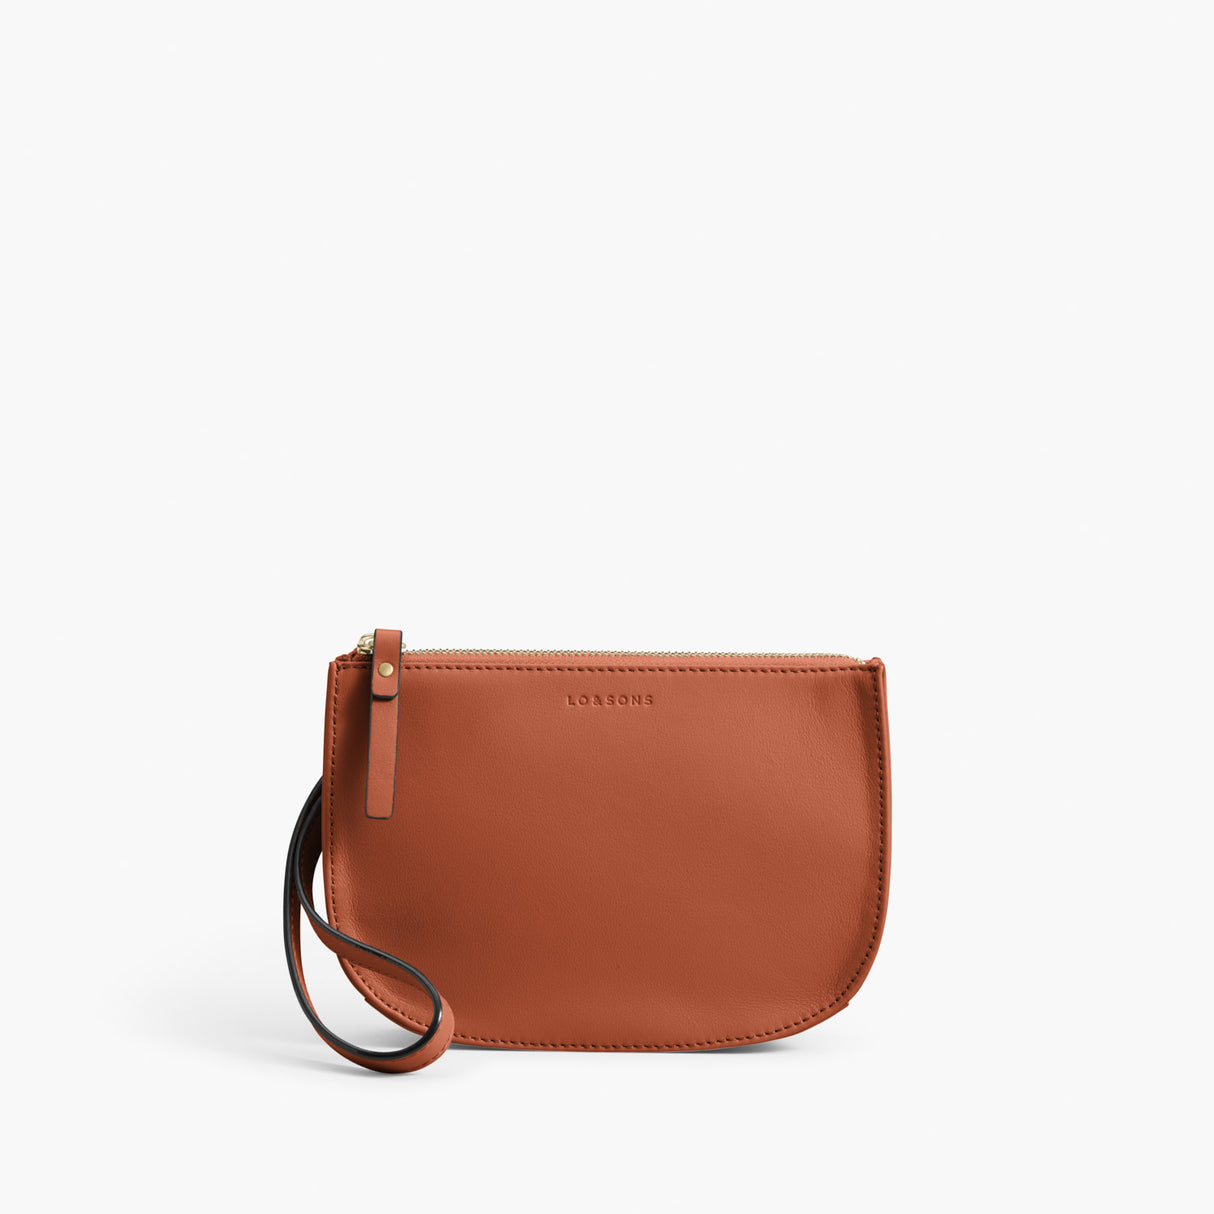 Front Wristlet - The Waverley 2 - Nappa Leather - Sienna / Gold / Camel - Crossbody - Lo & Sons